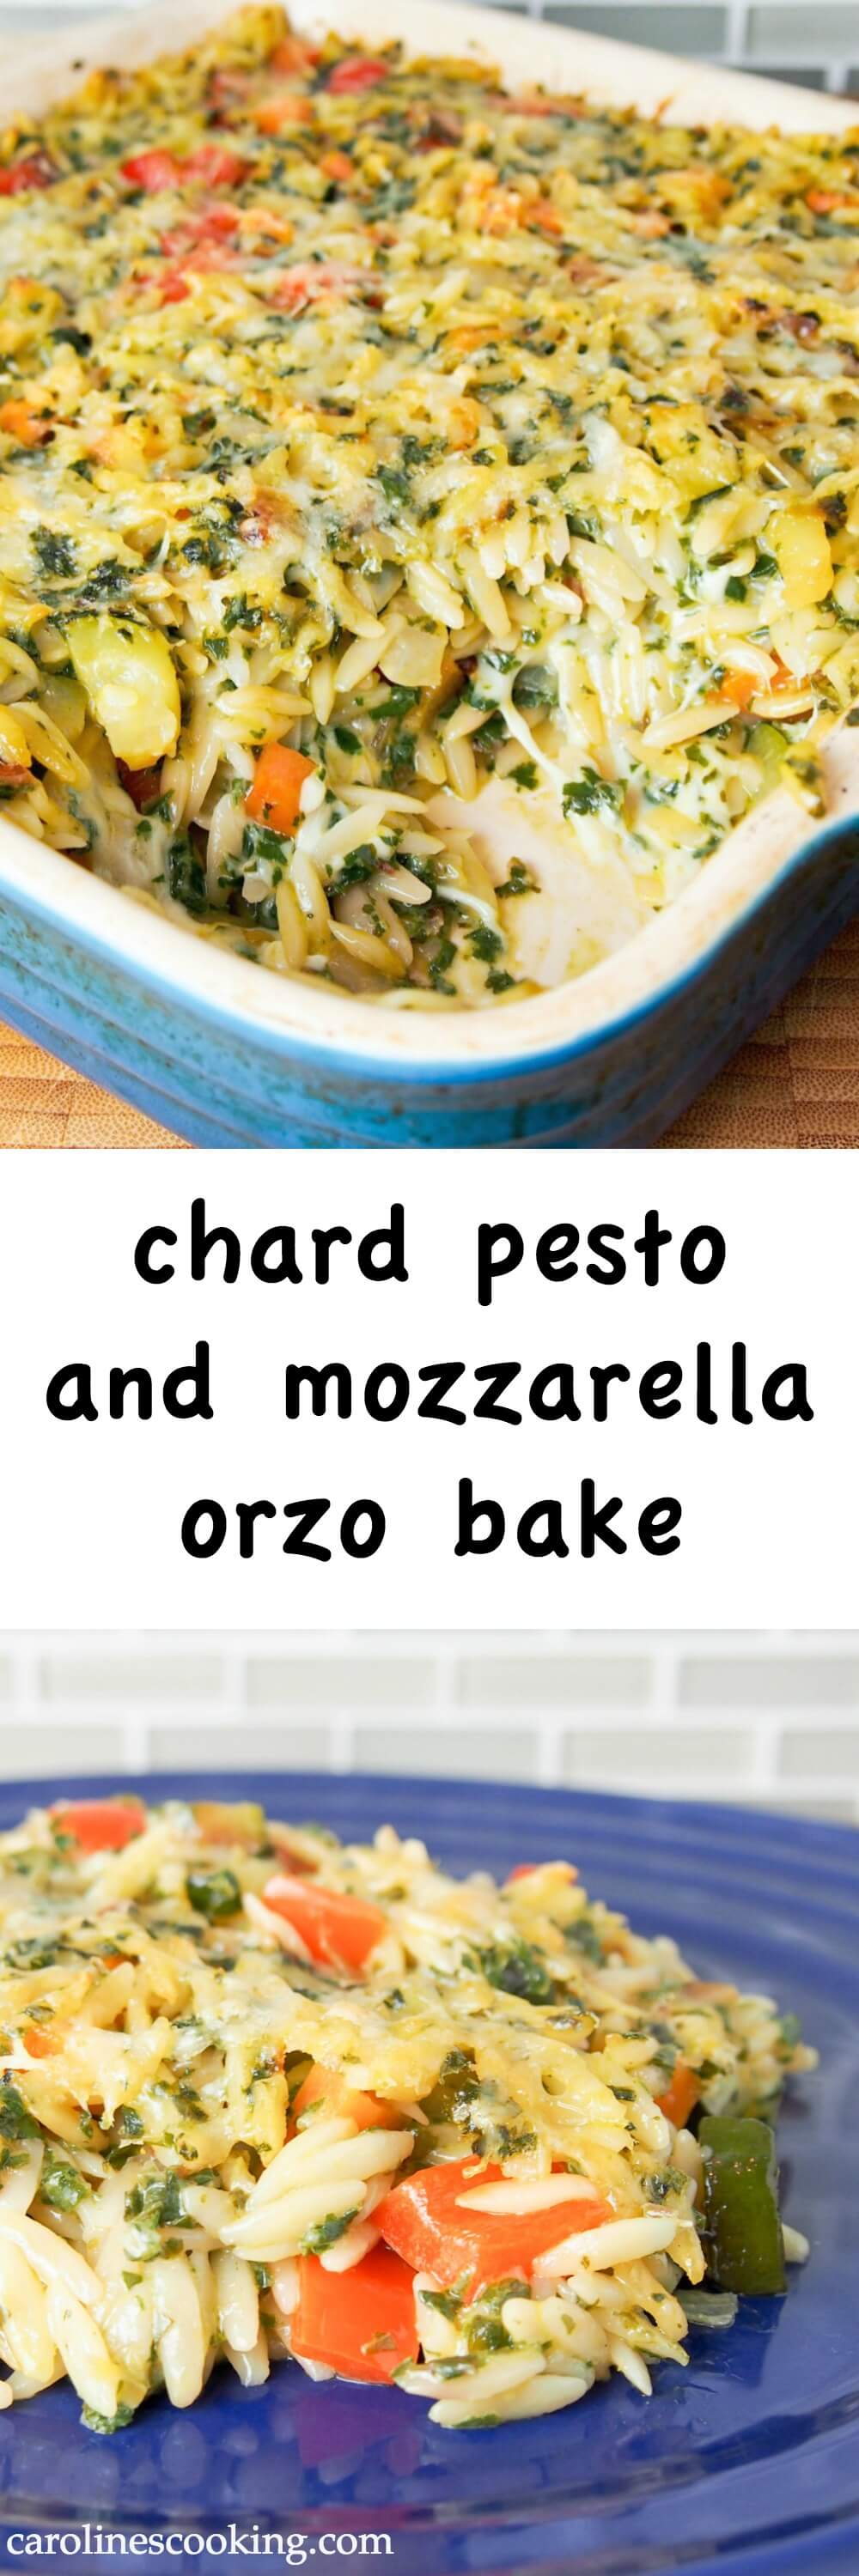 This tasty chard pesto and mozzarella orzo bake has the comfort factor of colder weather meals and the flavors of warmer times. Perfect for any occasion. Cheesy, but also with plenty of vegetable goodness, it's a delicious dinner.